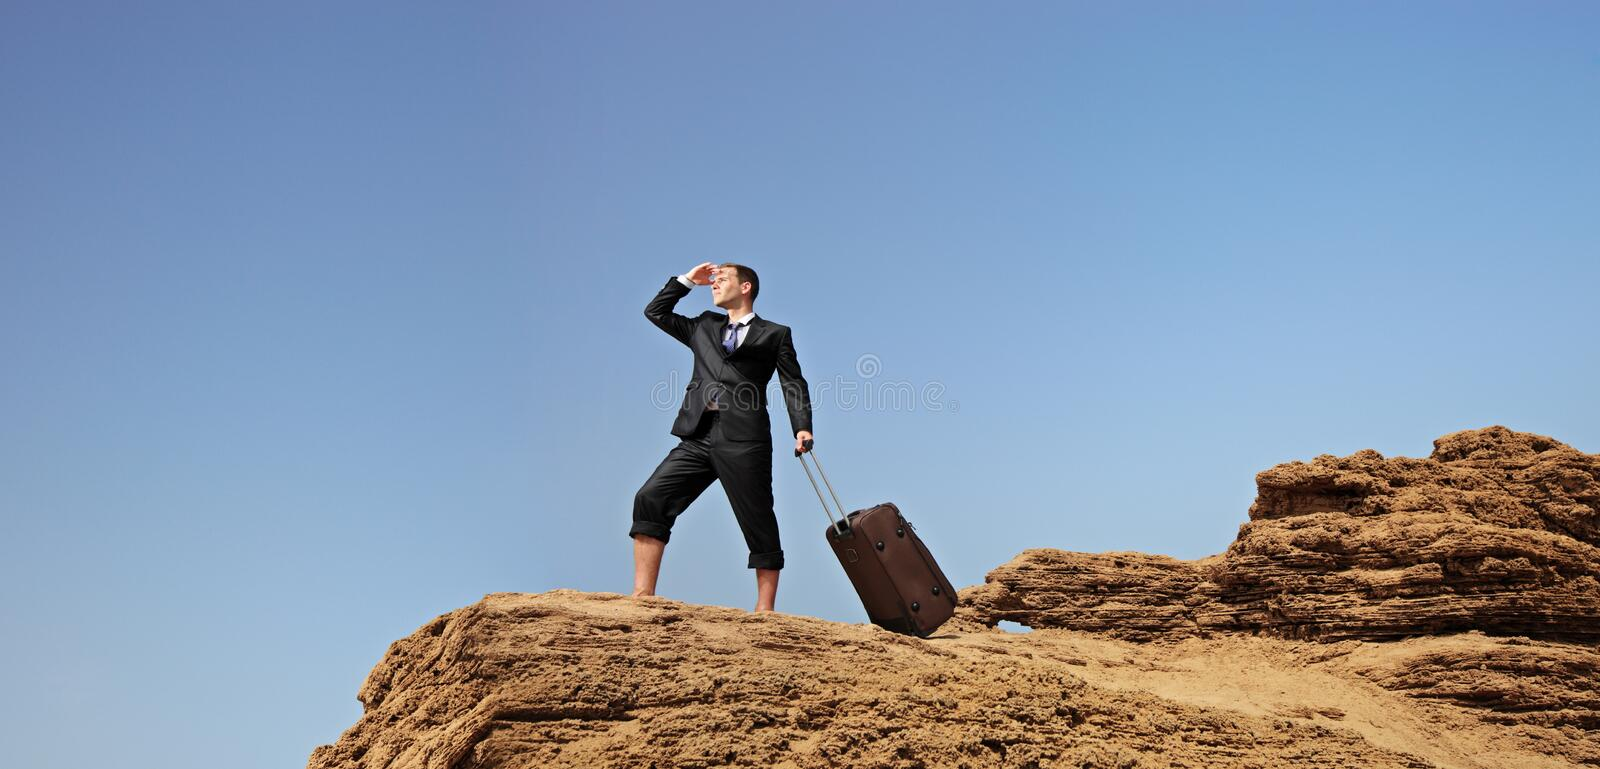 Lost businessman with a suitcase royalty free stock photography